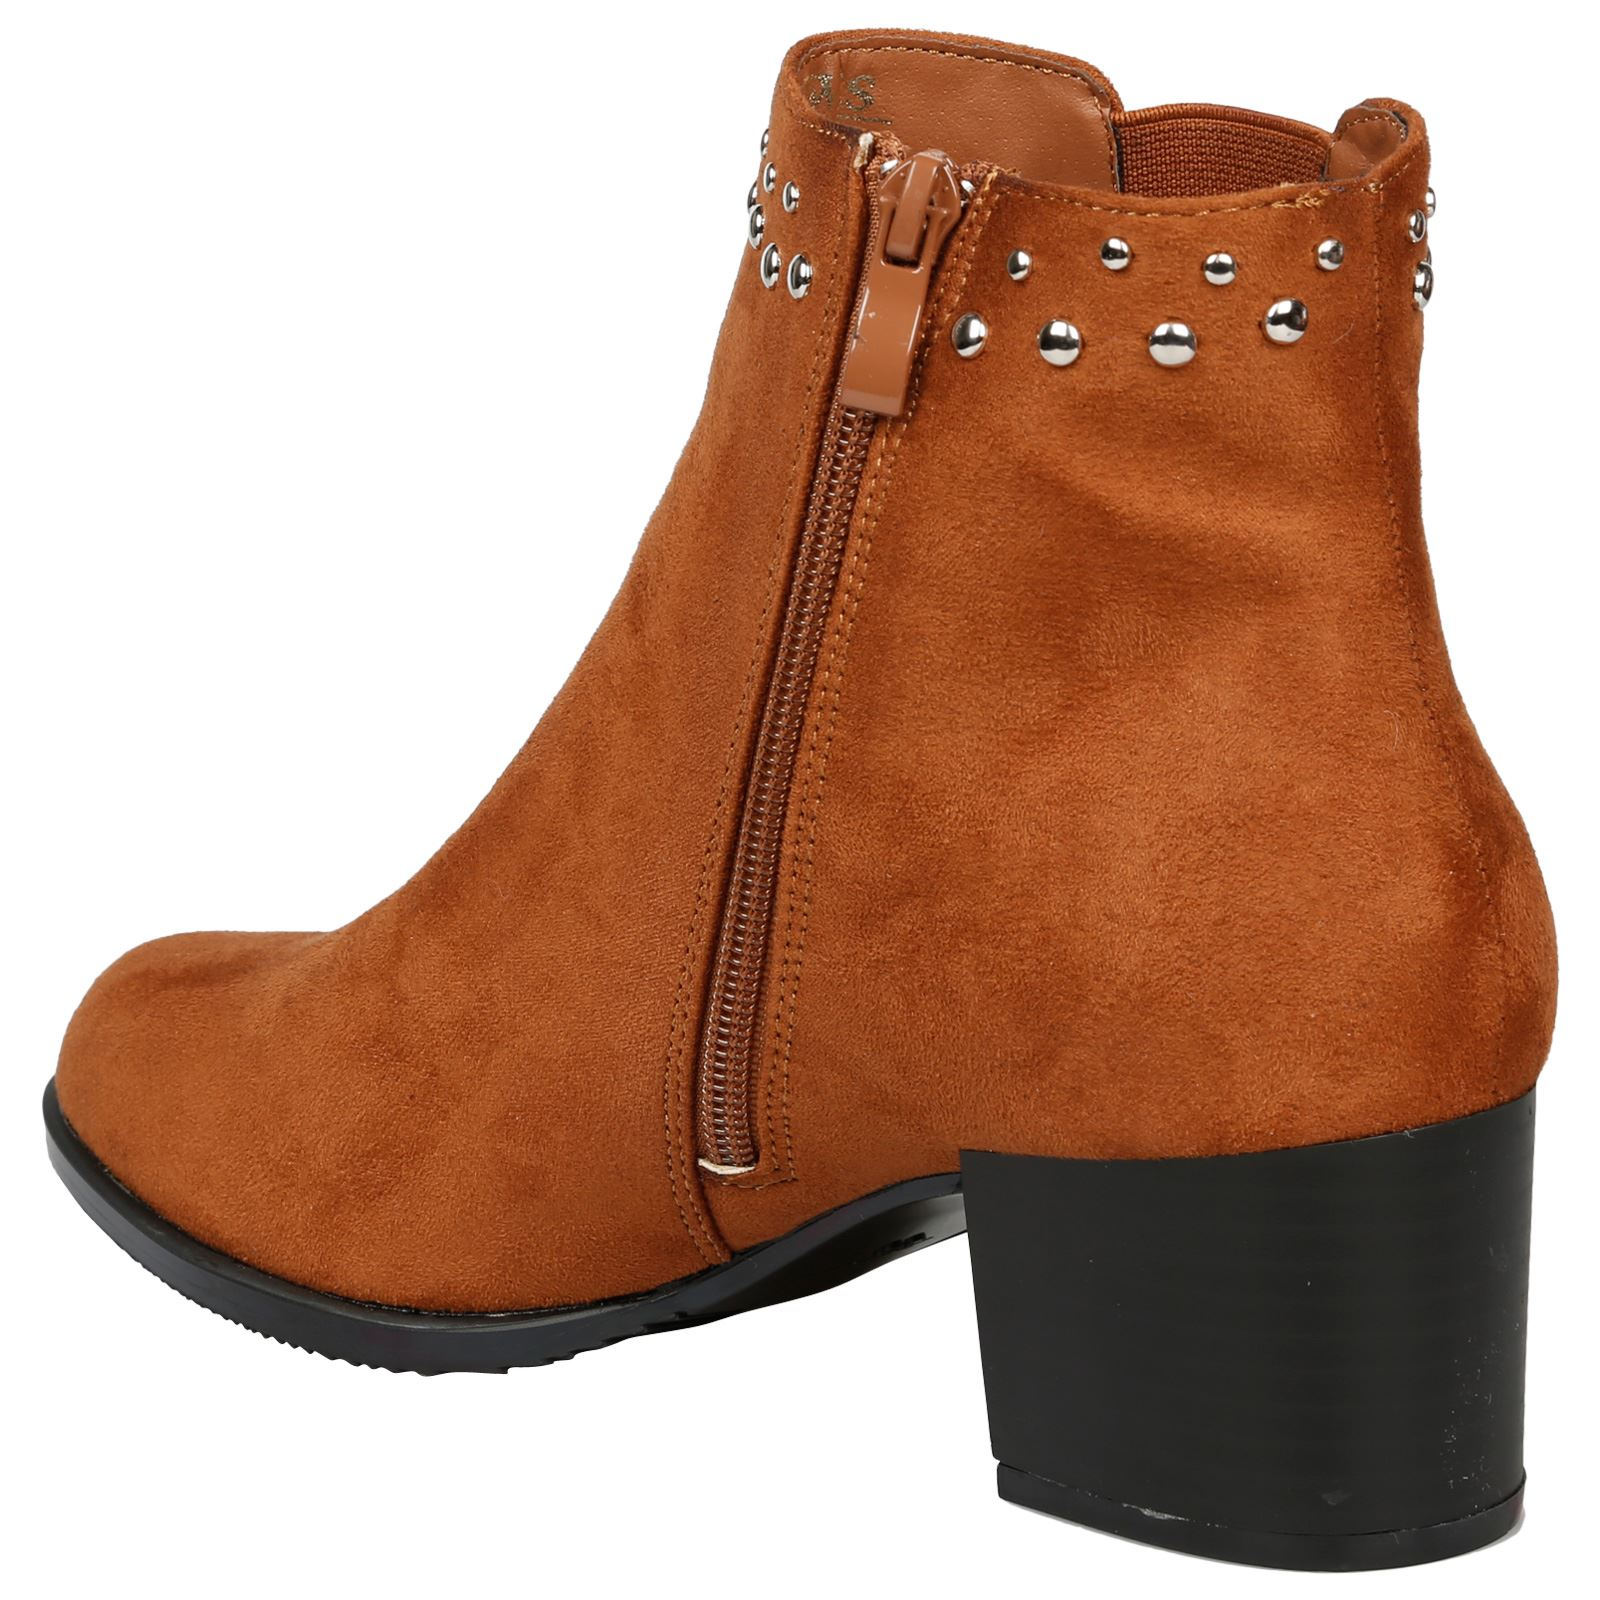 Luna-Womens-Low-Mid-Block-Heel-Studded-Chelsea-Zip-Up-Ankle-Boots-Casual-Ladies thumbnail 9